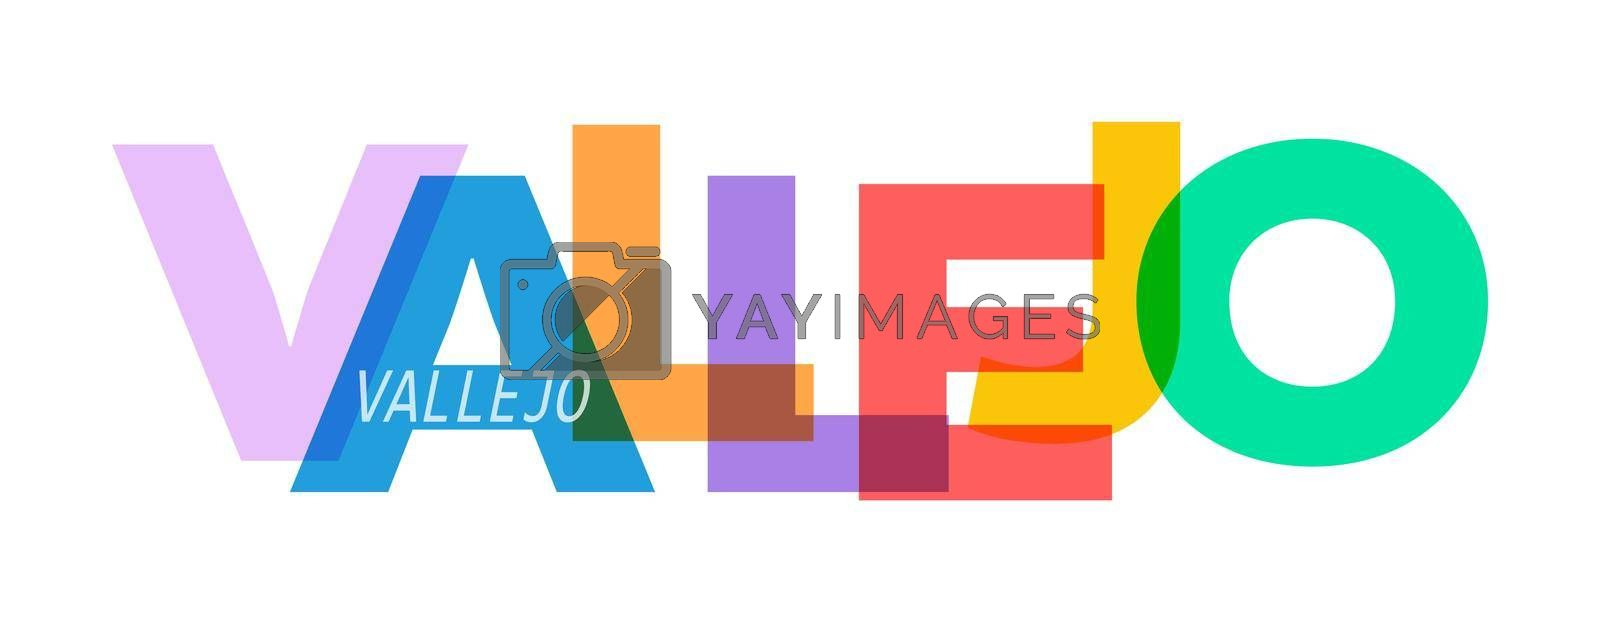 VALLEJO. The name of the city on a white background. Vector design template for poster, postcard, banner. Vector illustration.